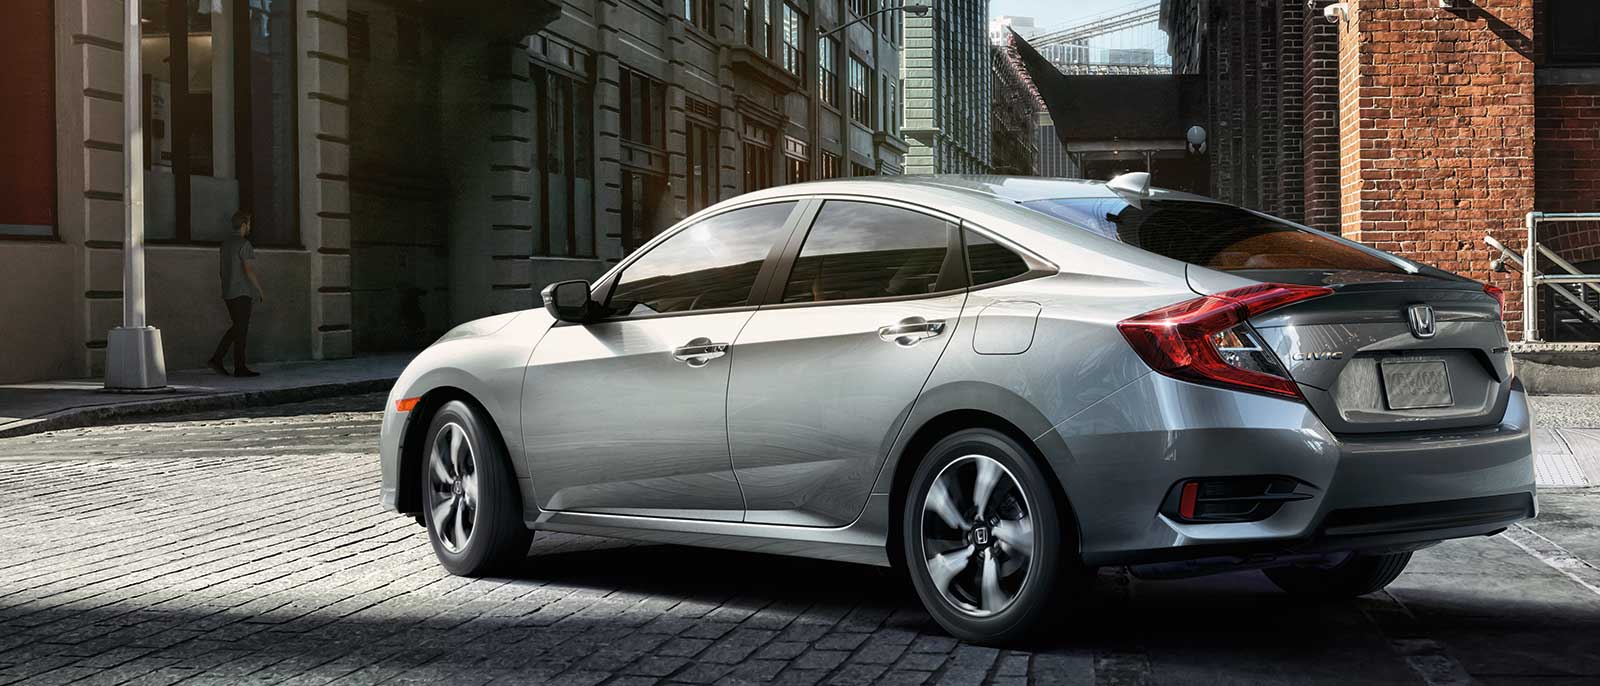 2017 Honda Civic Sedan rear view in silver